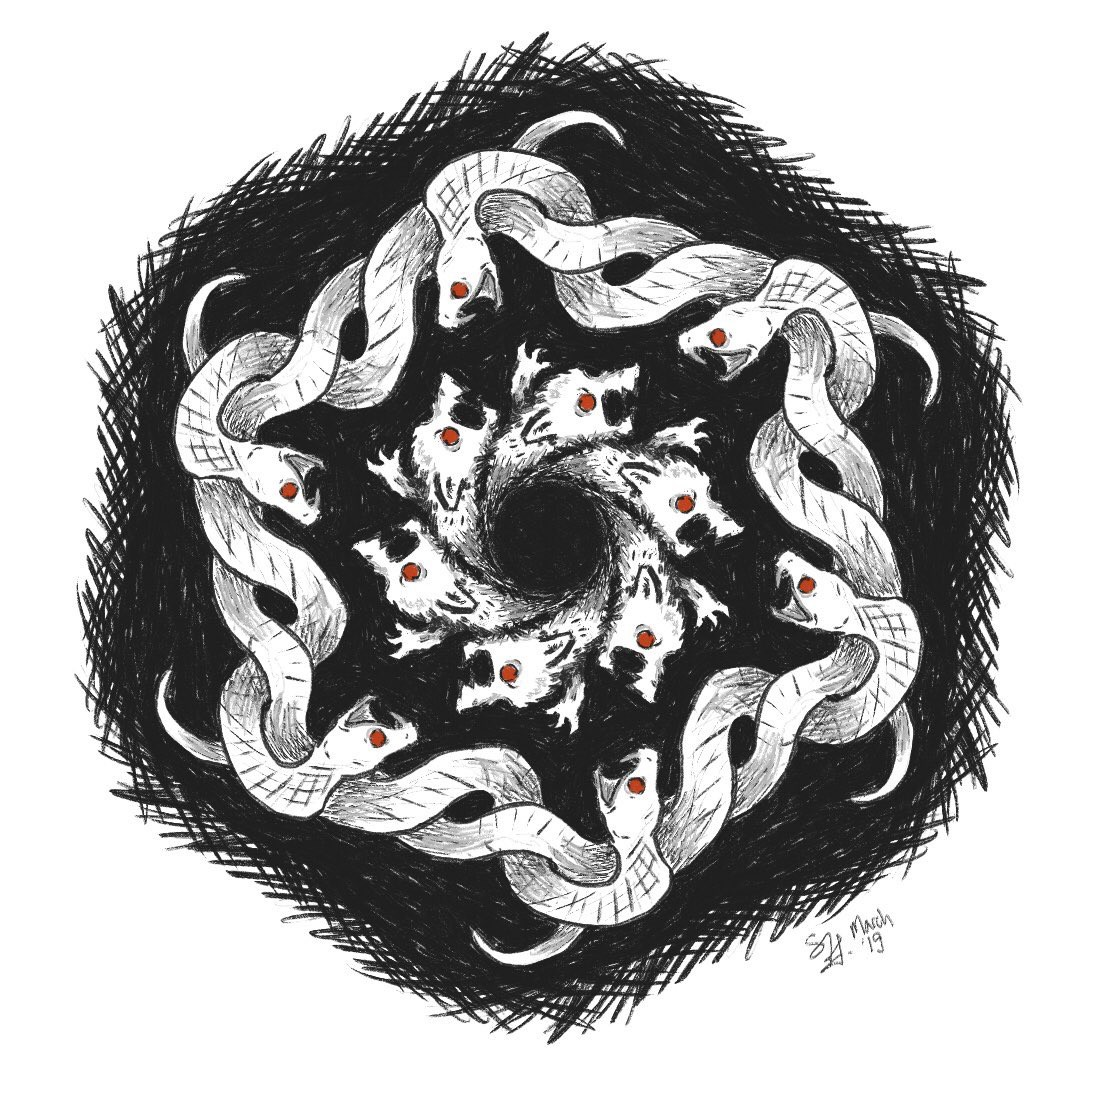 Image description: a loop of overlapping white ferrets with red eyes surrounded by a larger loop of snakes, their bodies wound together. The snakes and ferrets are snarling at each other.